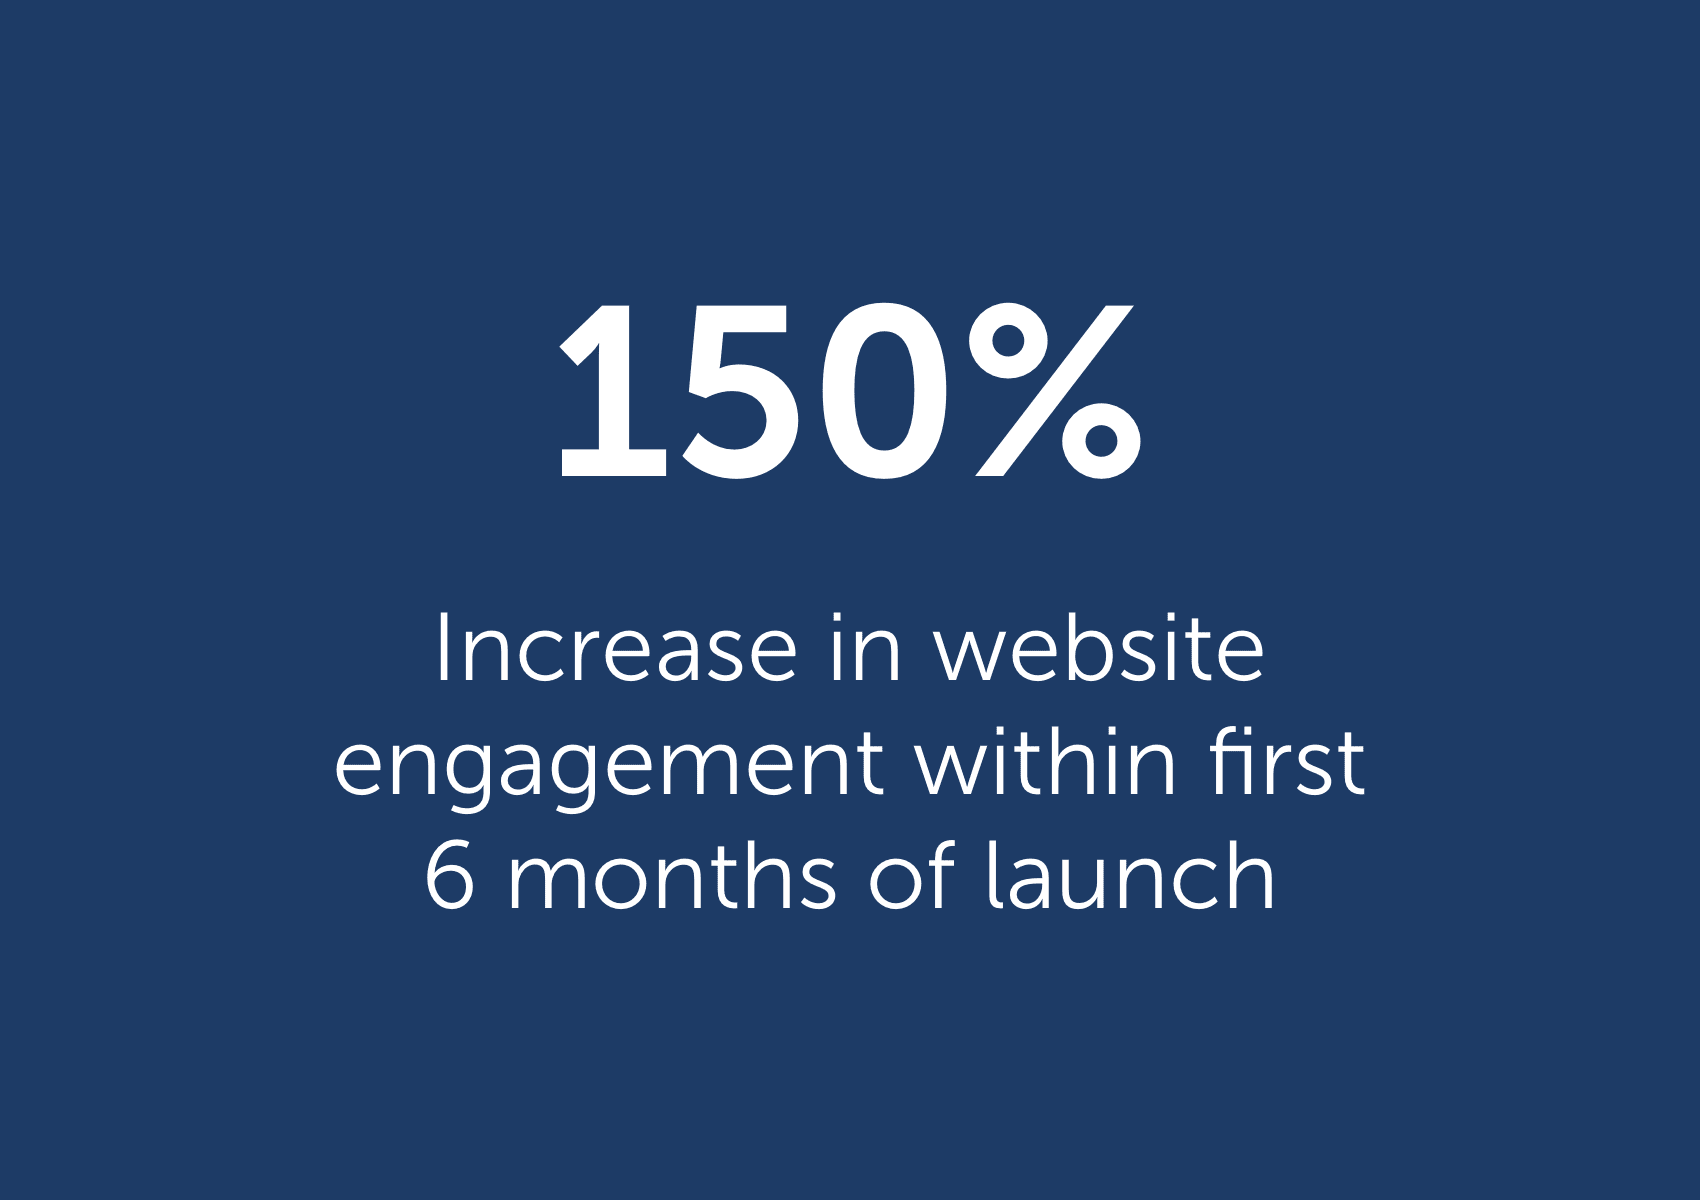 150% increase in website engagement